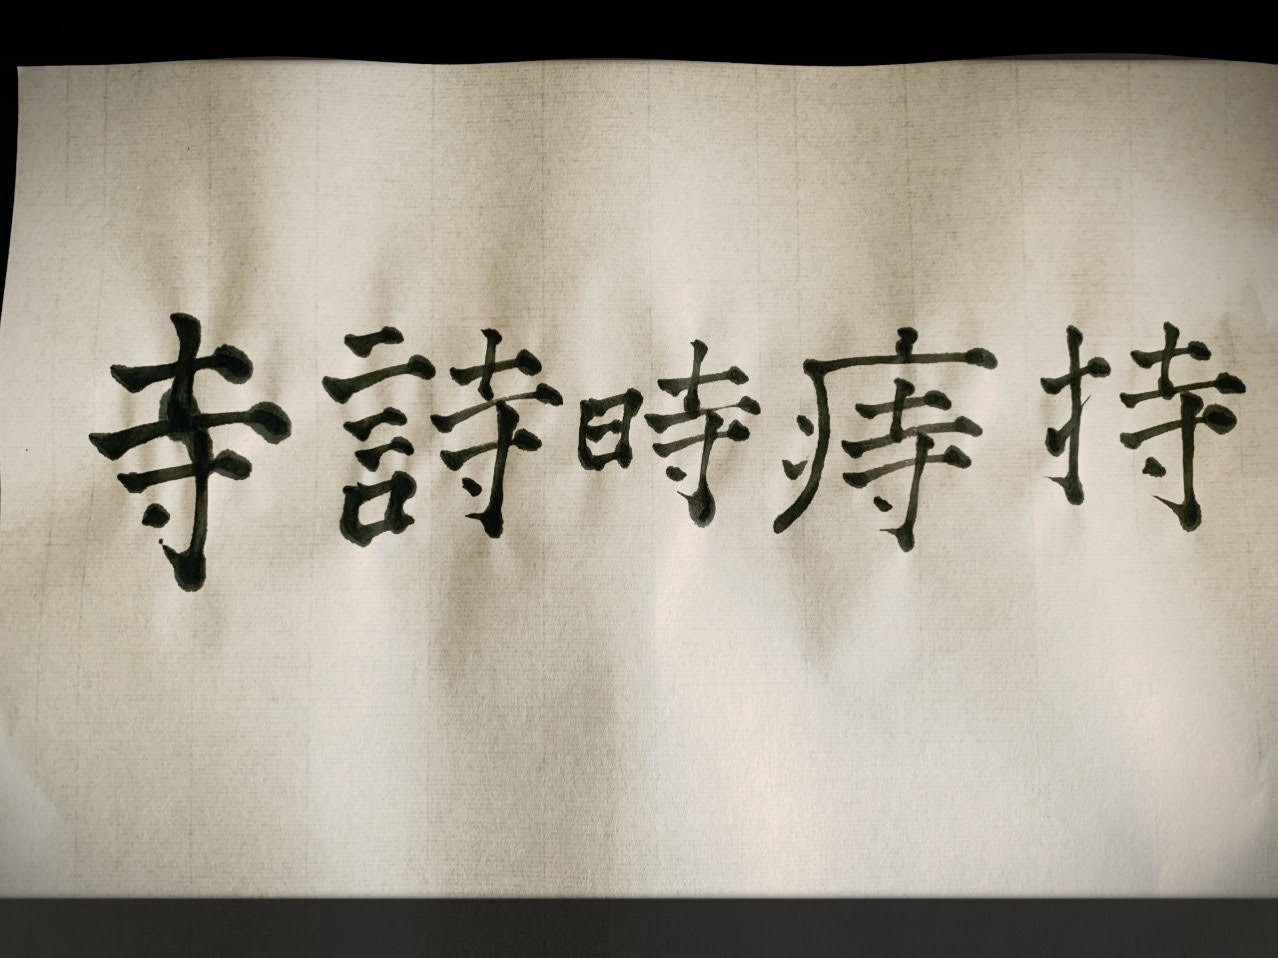 Five Chinese characters written out by the author using a traditional Chinese brush on rice paper.